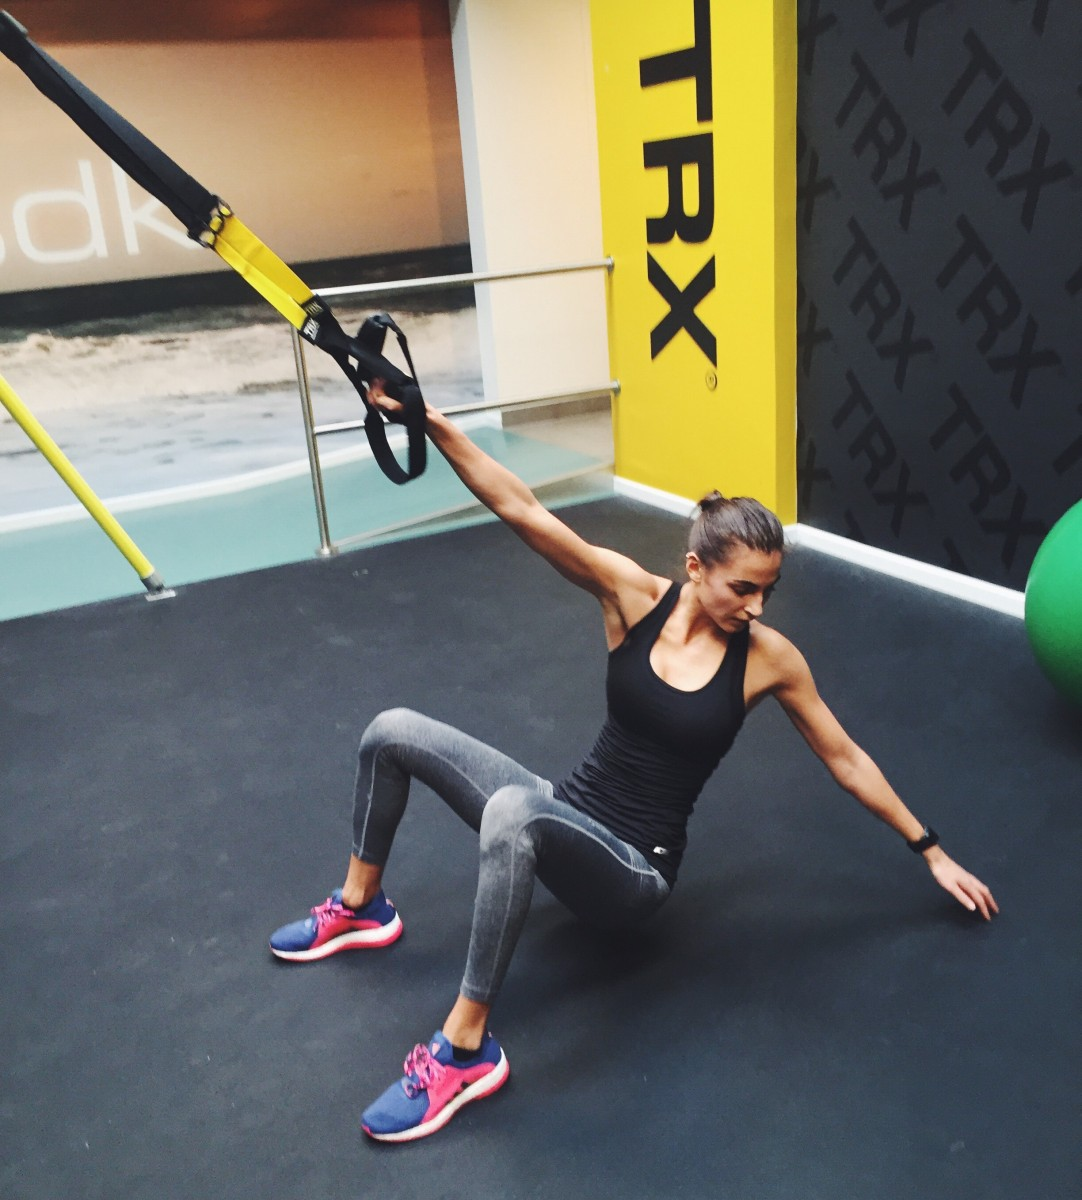 this way by pallesen, simply fit, fitness, workout, personal training, customized program, pt, personlig træning, TRX, HIIT, hight intensity interval training, tabata, day 1, senses, yoga, costume, blogger, travel, stay fit, ferie, i form, stay motivated, motivation, motion,